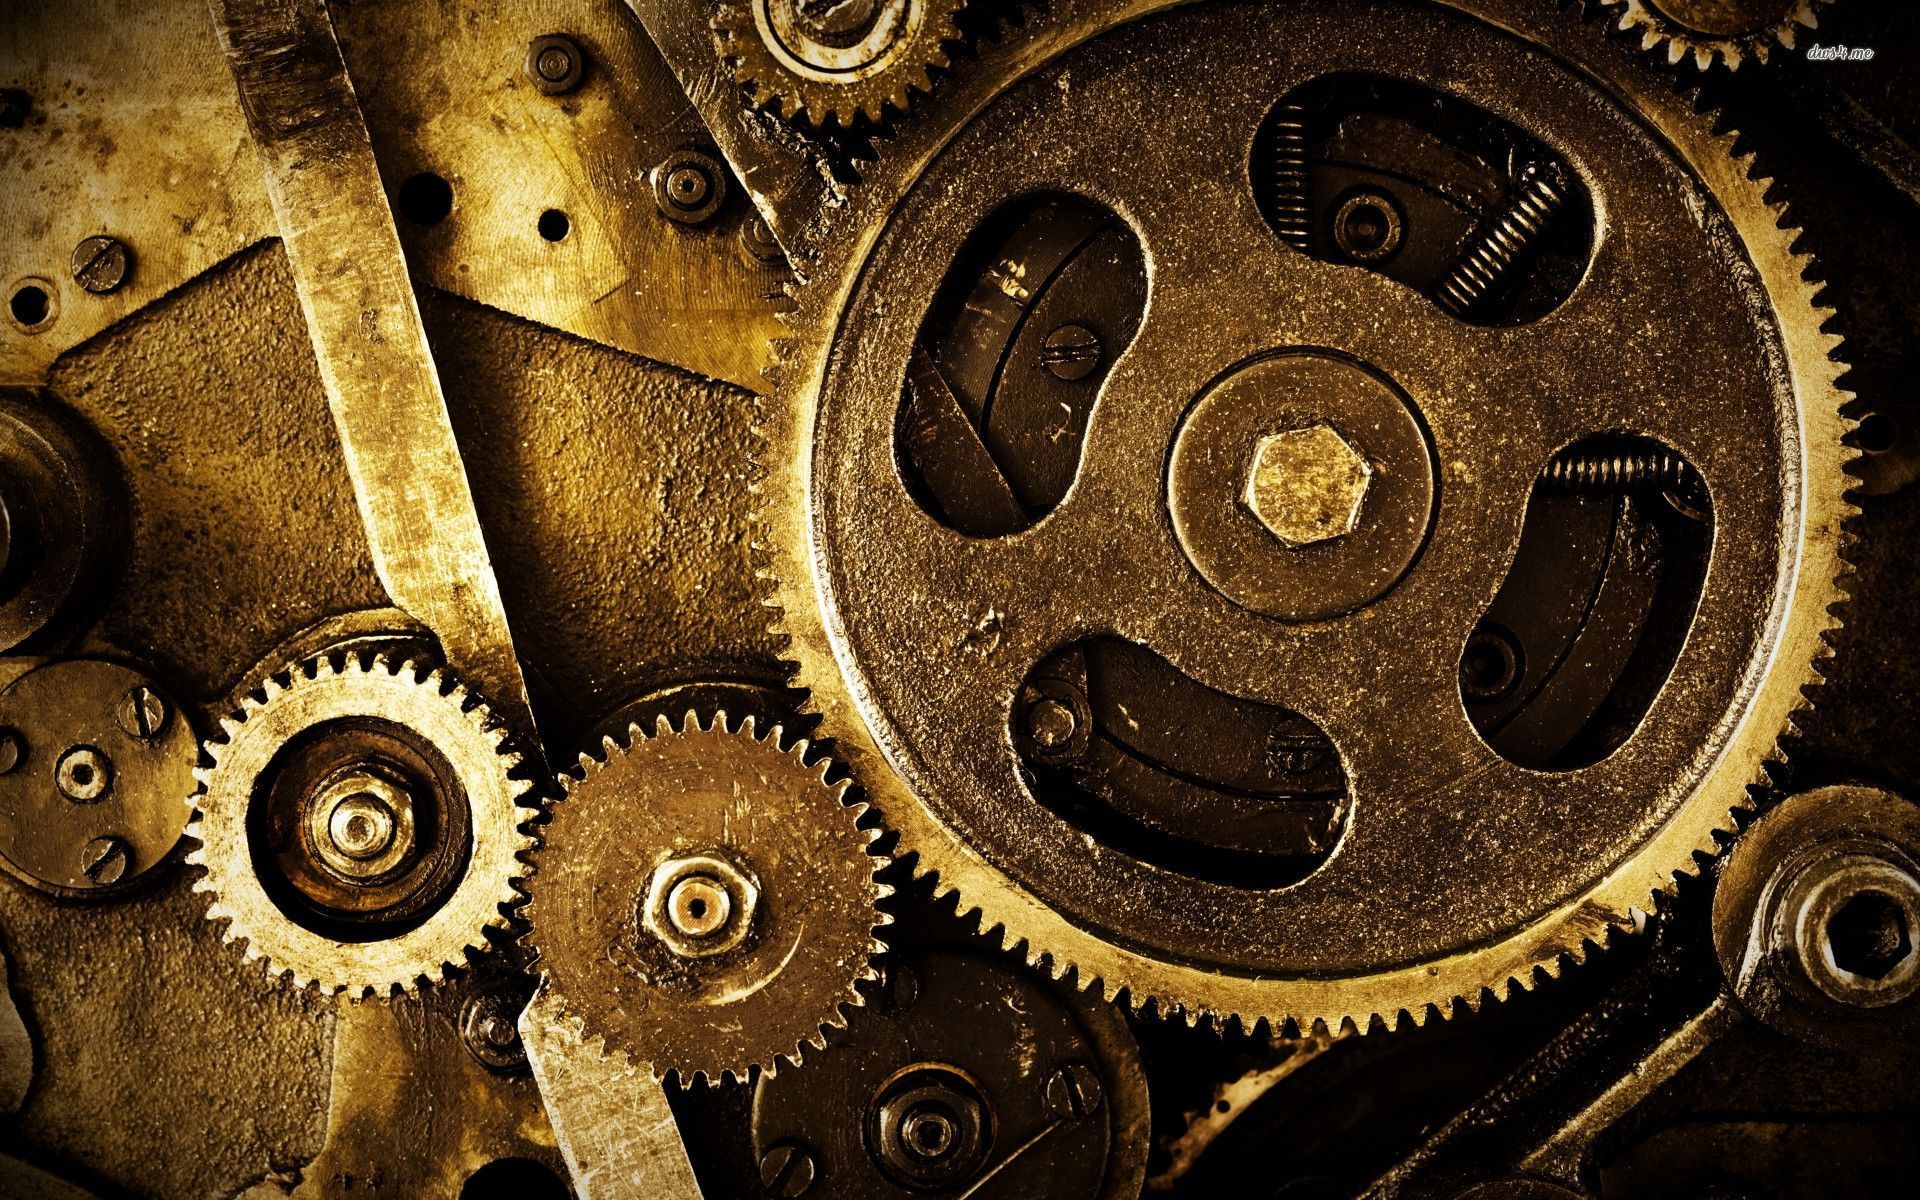 42 Mechanical Gears Wallpaper On Wallpapersafari